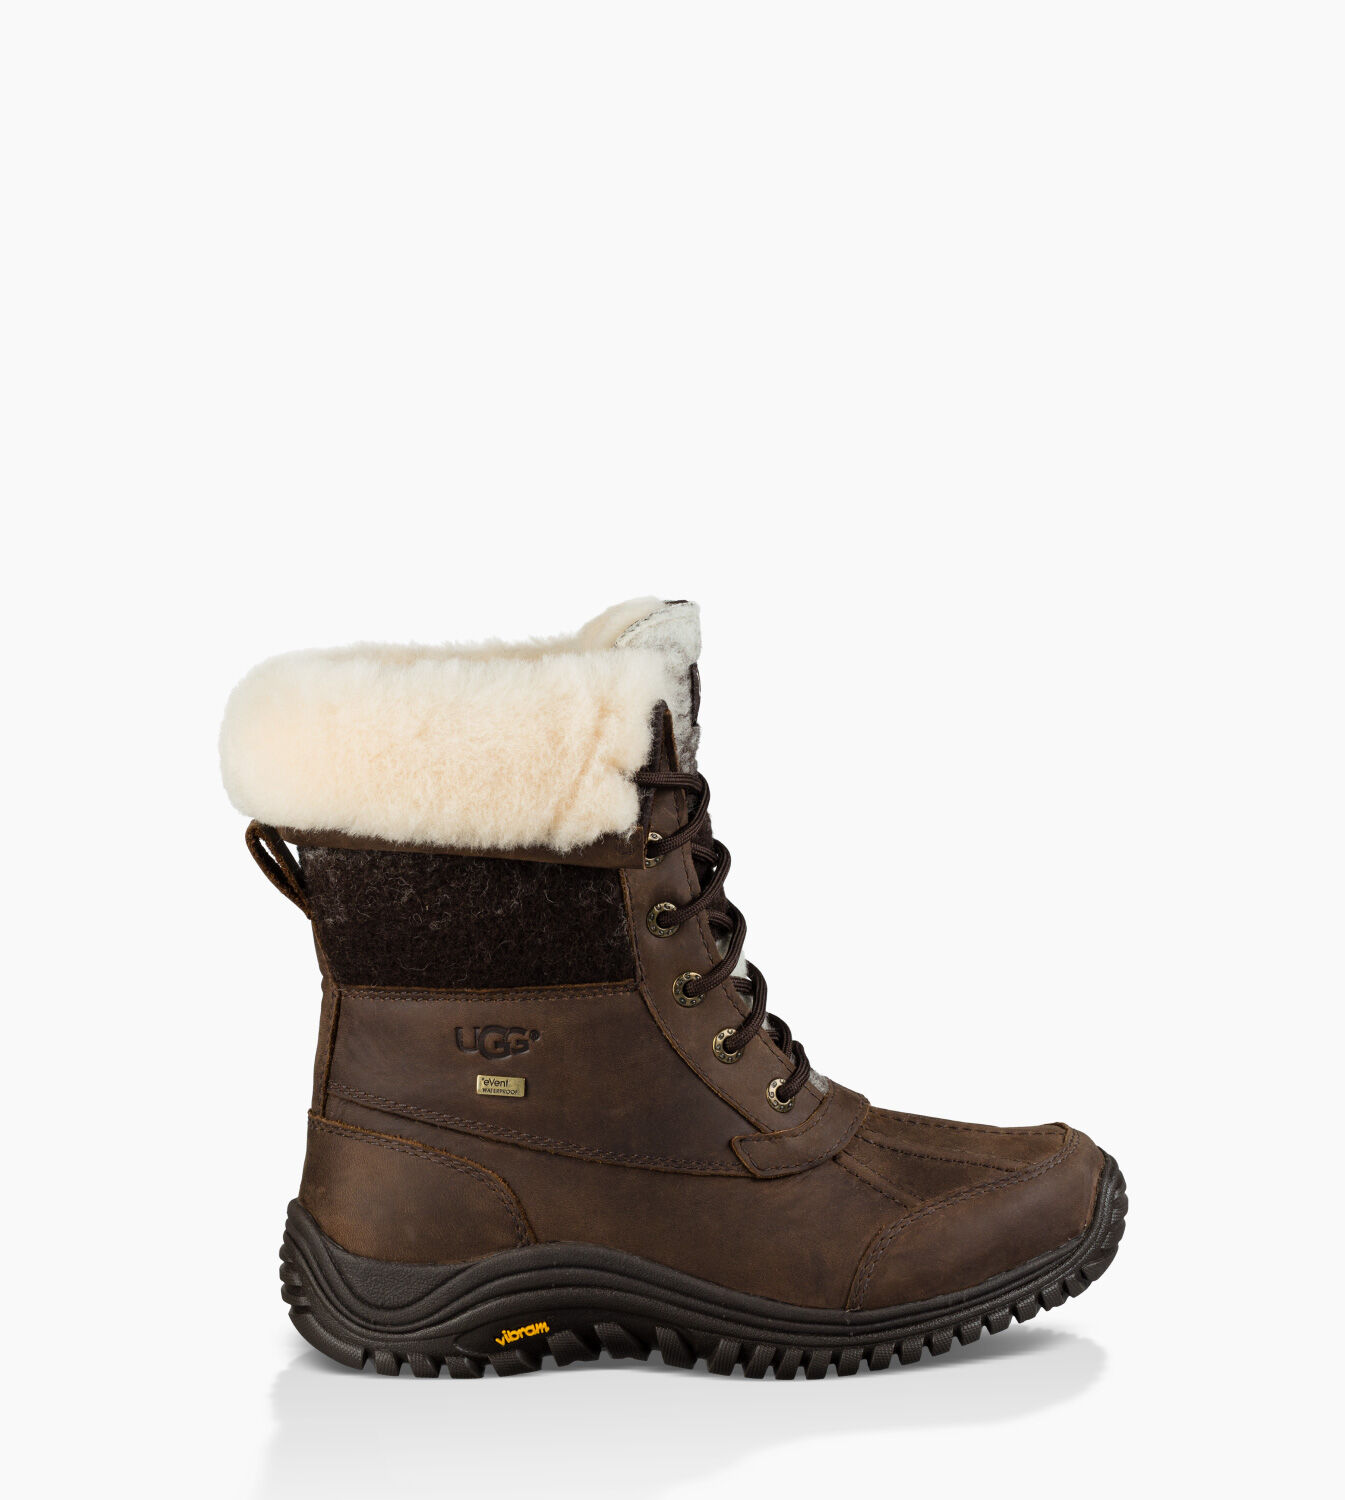 Top Fashion Womens Boots - UGG Adirondack II Chocolate